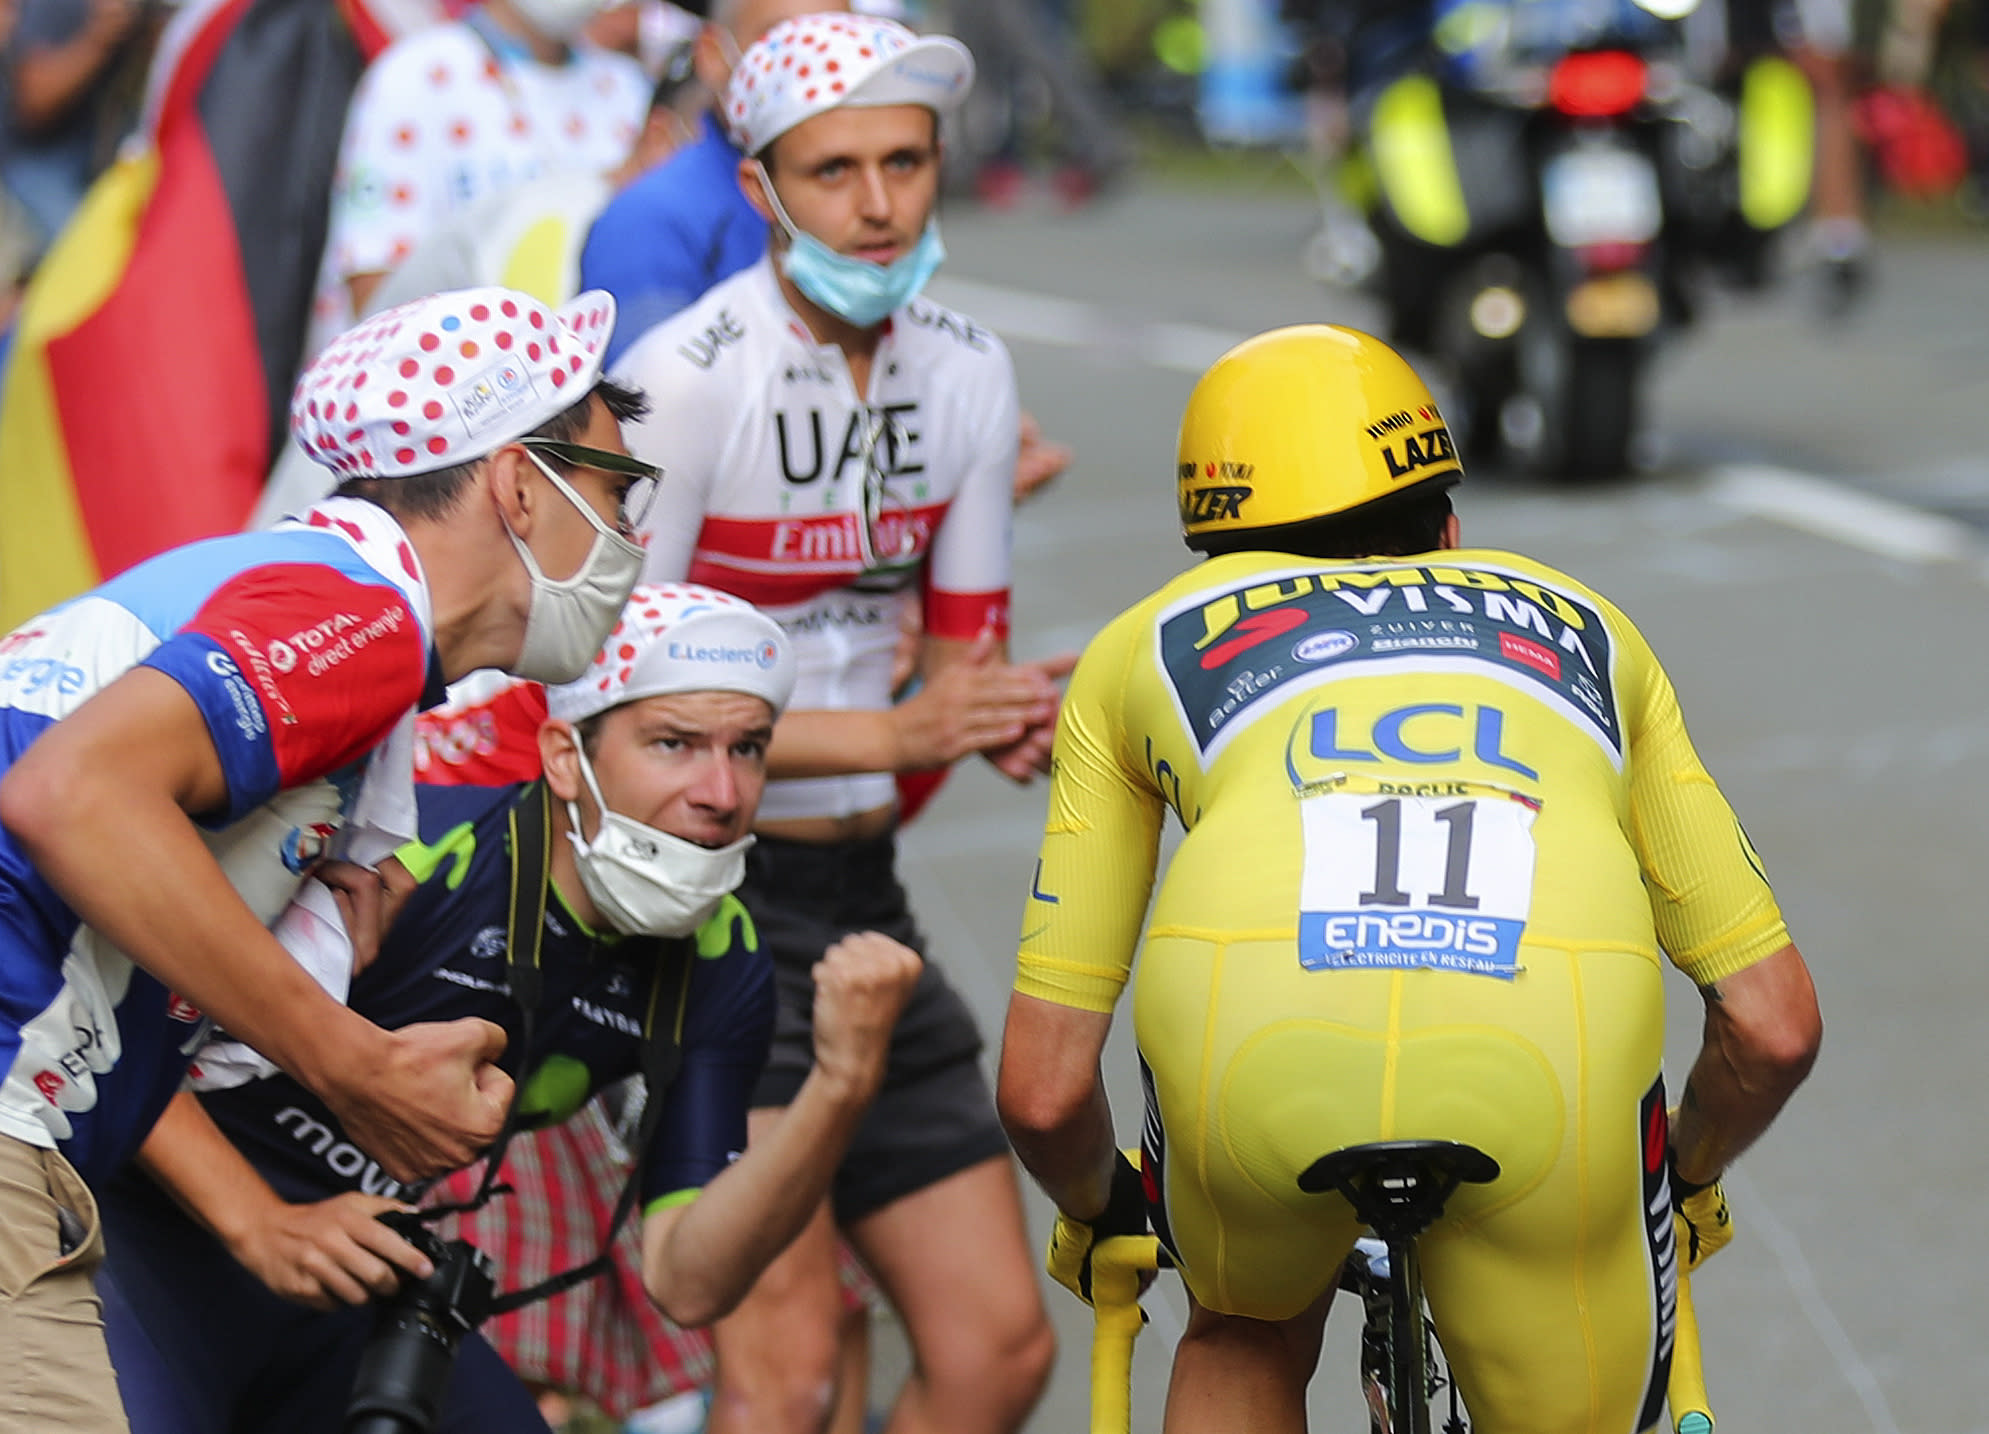 Slovenia's Primoz Roglic, who lost his overall leader's yellow jersey, competes during stage 20 of the Tour de France cycling race, an individual time trial over 36.2 kilometers (22.5 miles), from Lure to La Planche des Belles Filles, France, Saturday, Sept. 19, 2020. (AP Photo/Thibault Camus)